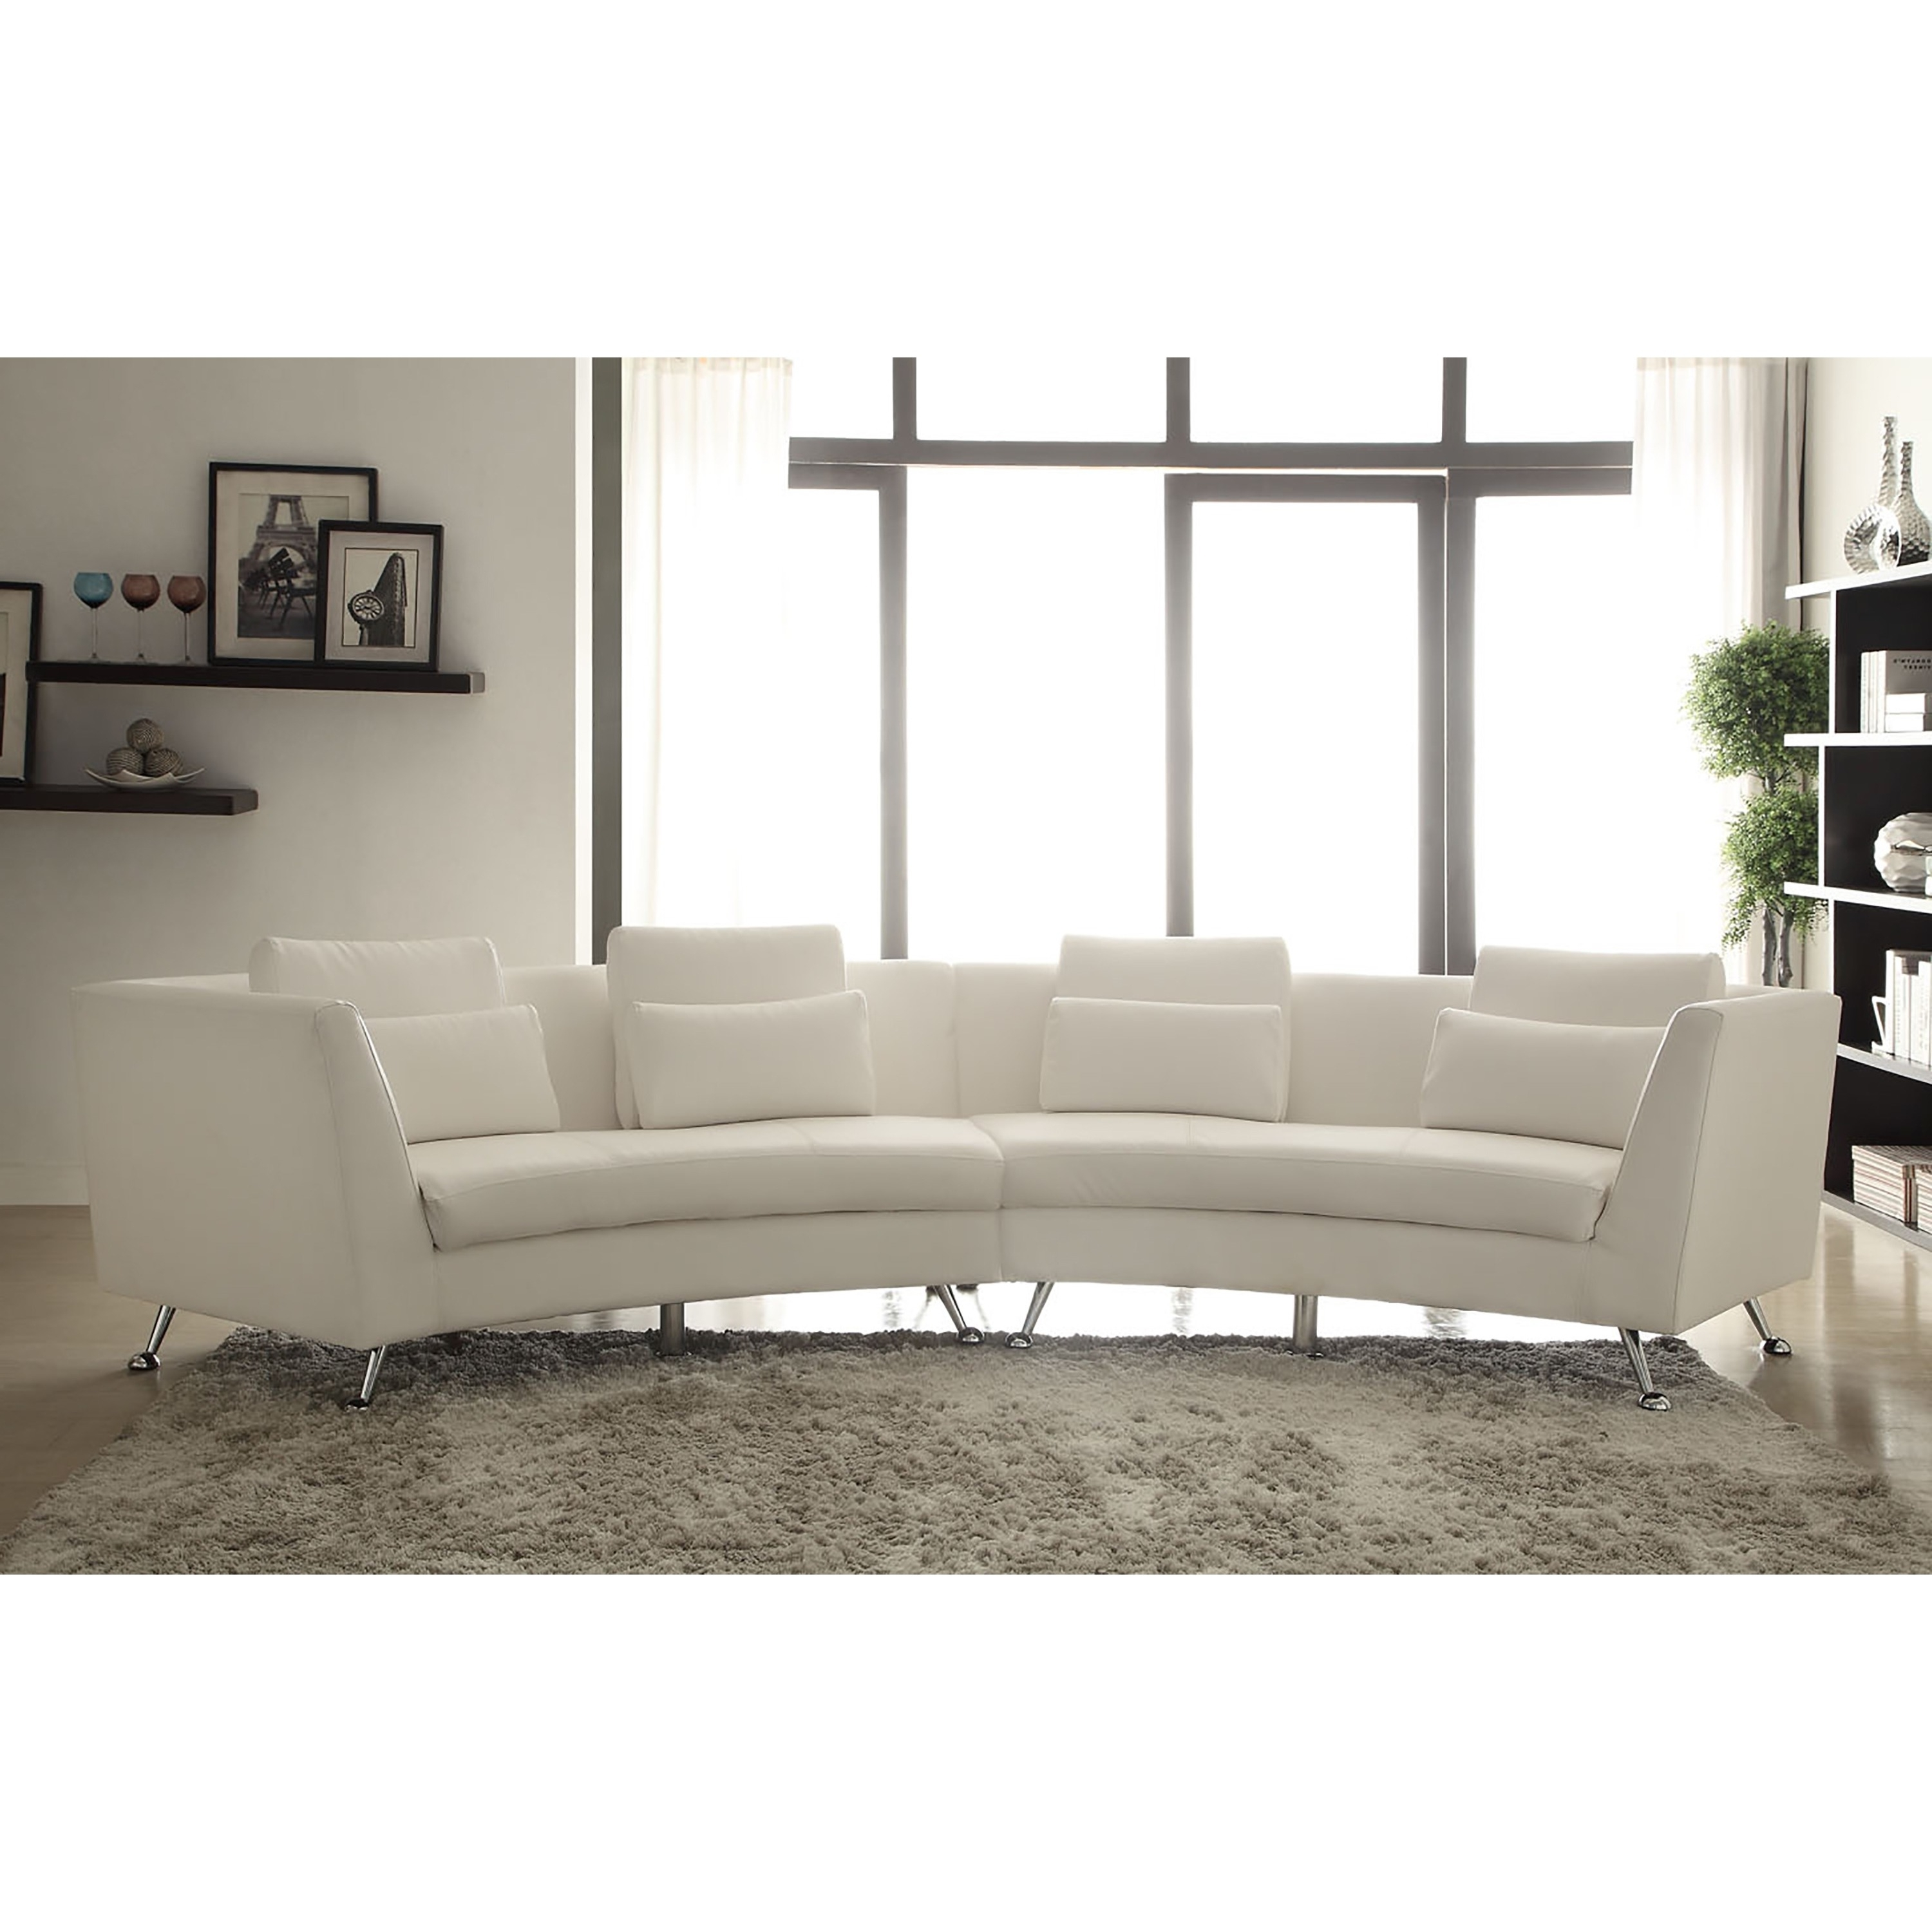 Curved Sectional Sofas With Recliner In Widely Used Furniture : Small Scale Sectional Sofas Reclining Sofa In (View 8 of 20)